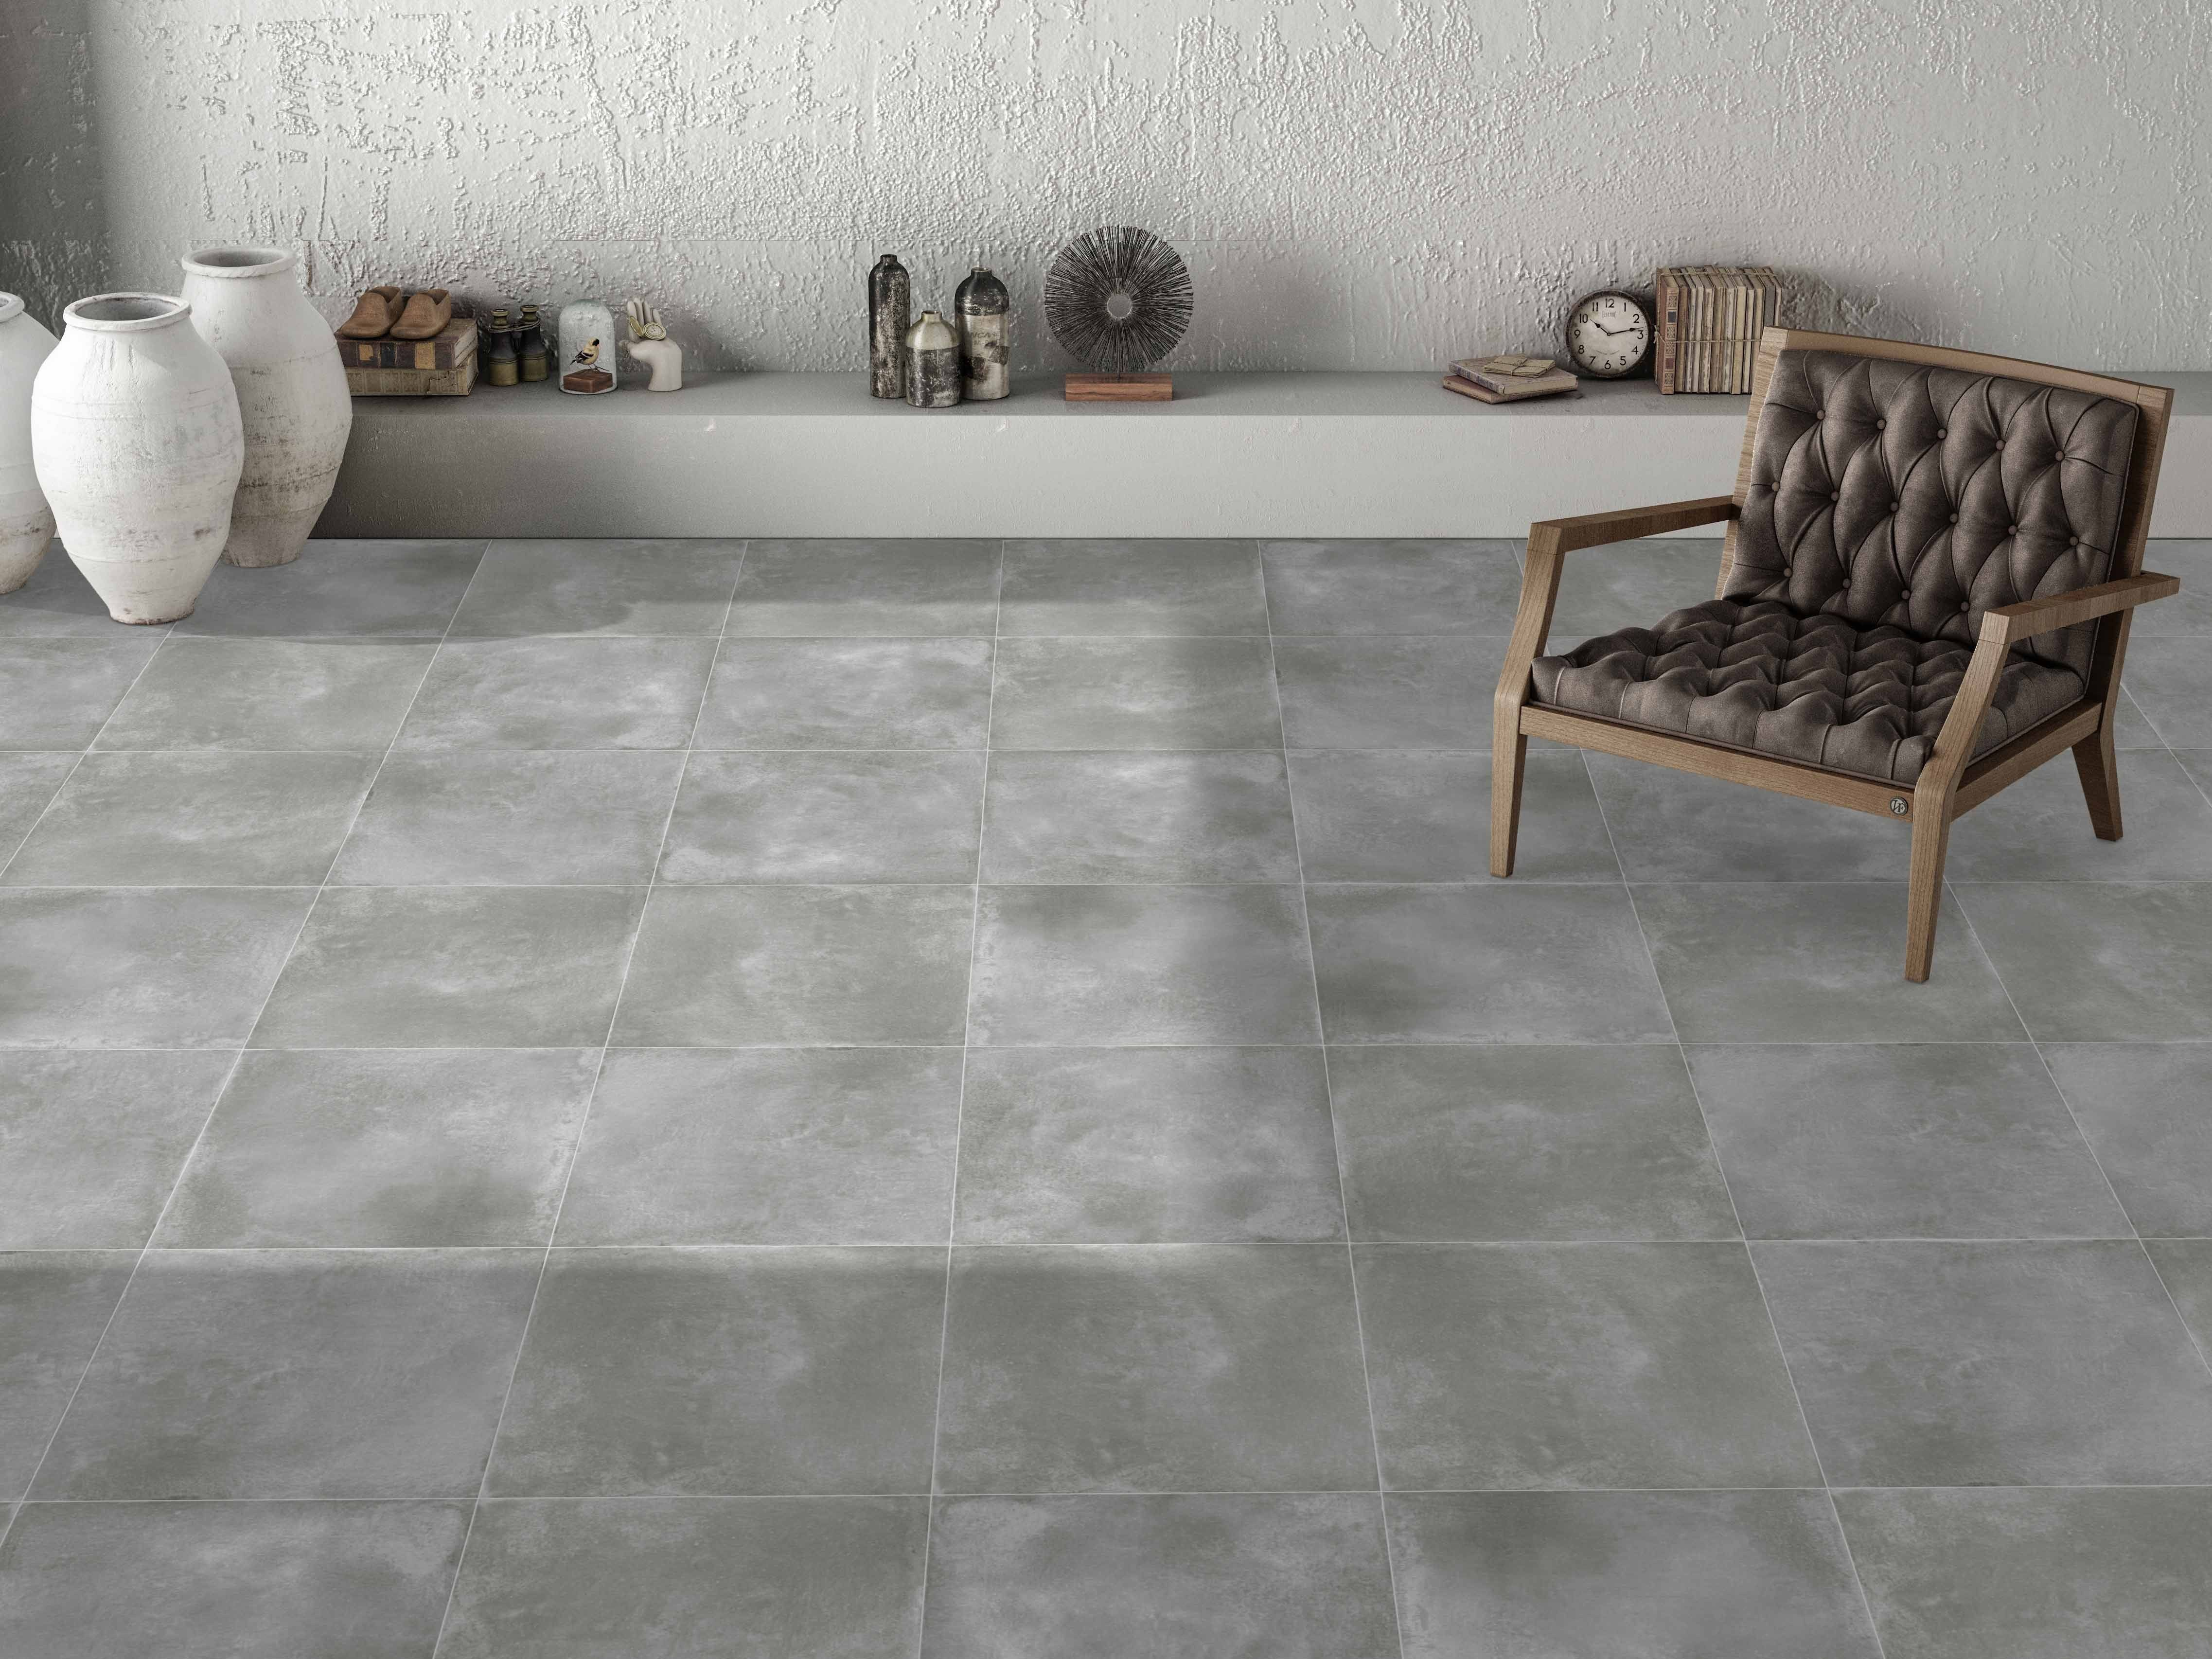 Urban Chic Concrete Effects Give This Energy Grey Porcelain Tile Style At Genuine Low Prices